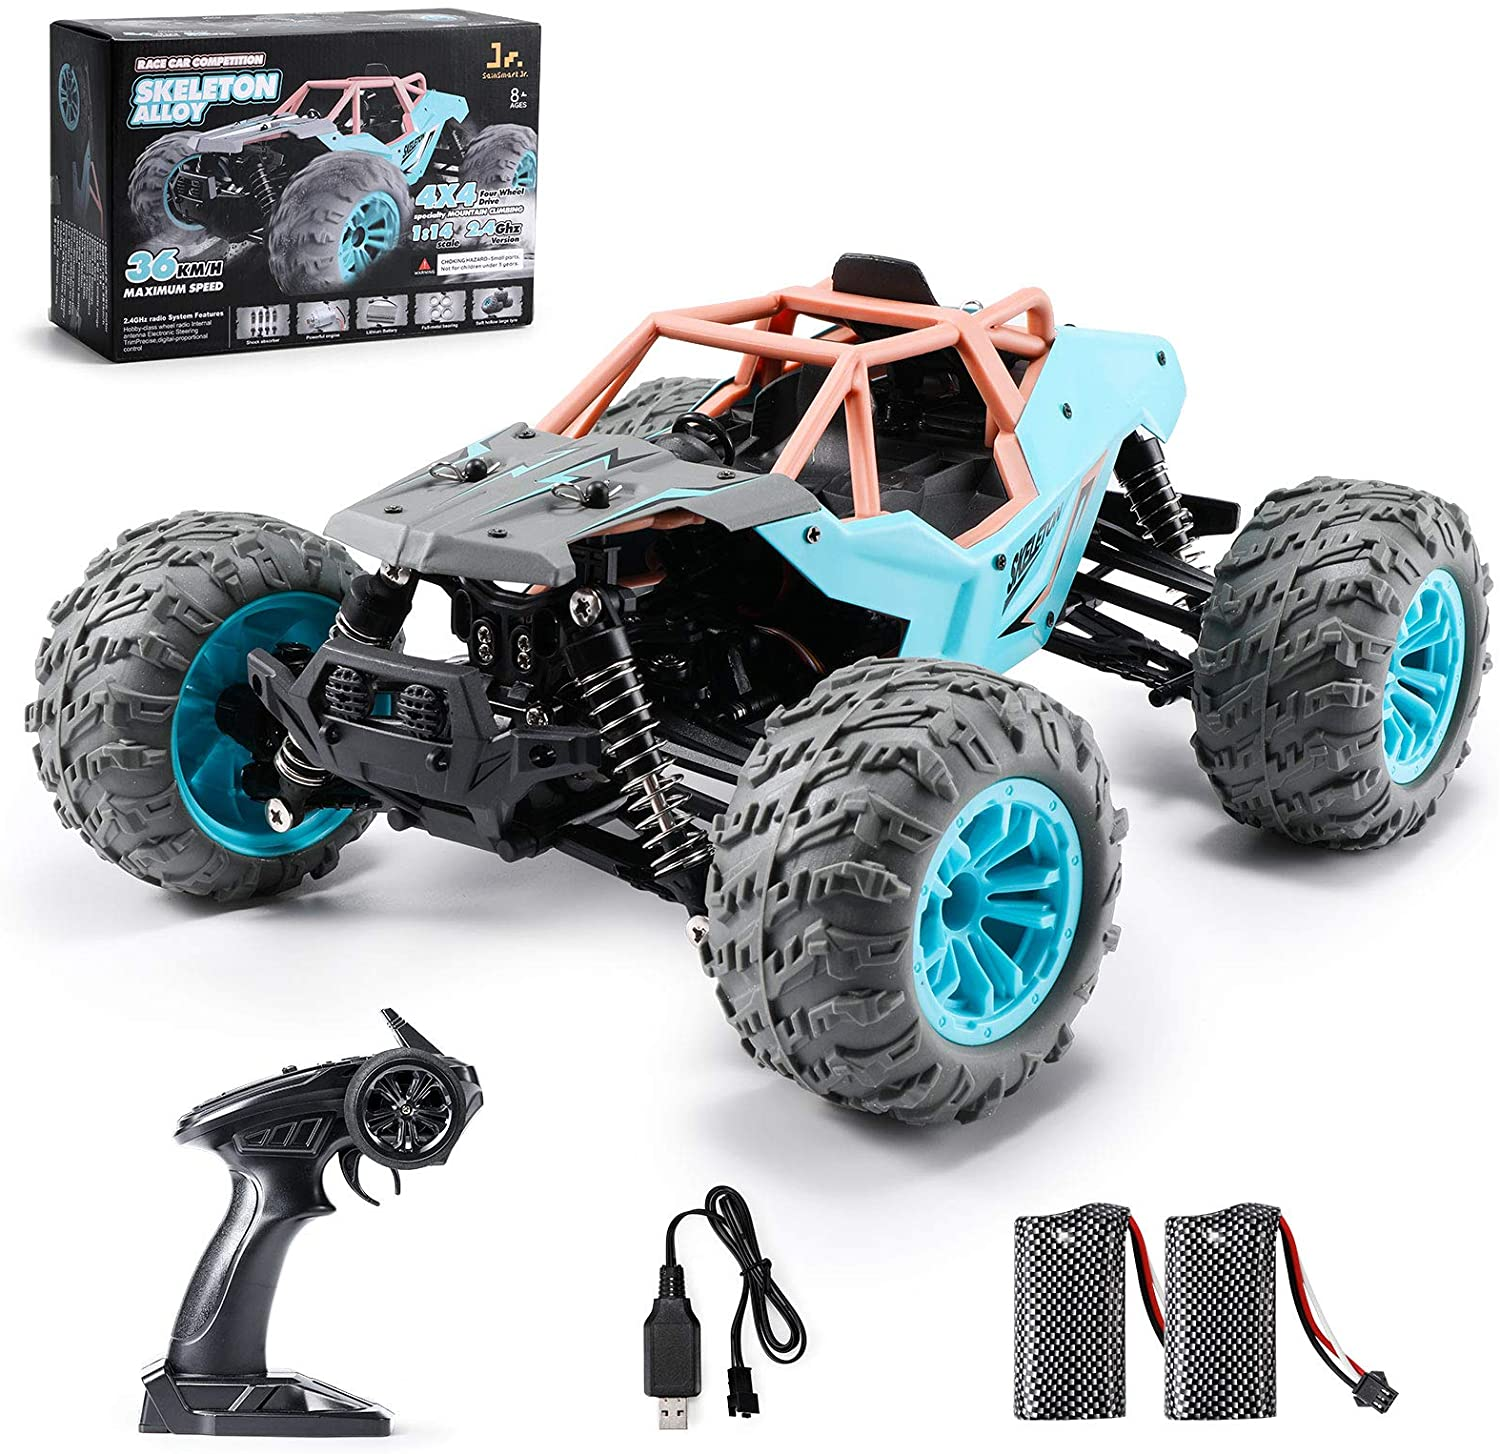 SainSmart Jr. Off Road RC Car 1:14 Remote Control Truck 36KM/H High Speed Monster Rock Crawler, 4x4 All-Terrain Electric Vehicle with Two Rechargeable Batteries for Boy Kids and Adults